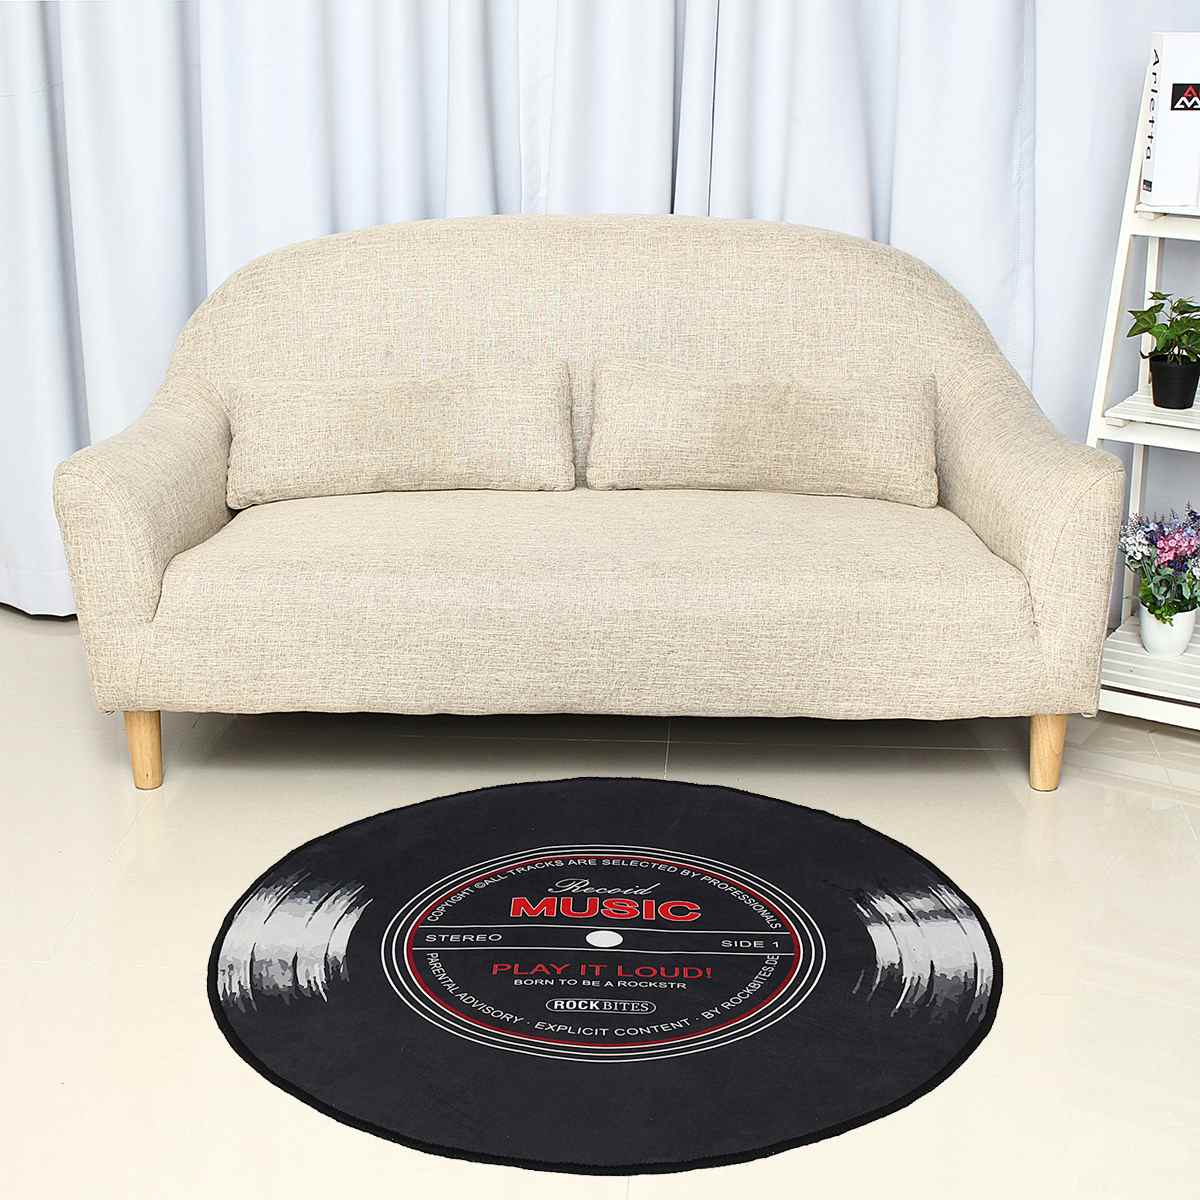 4 Size Music Carpet Rug Living Room Bedroom Kids Room 3D Vinyl Record Printed Round Floor Mat Chair Home Kitchen Decor Anti Slip